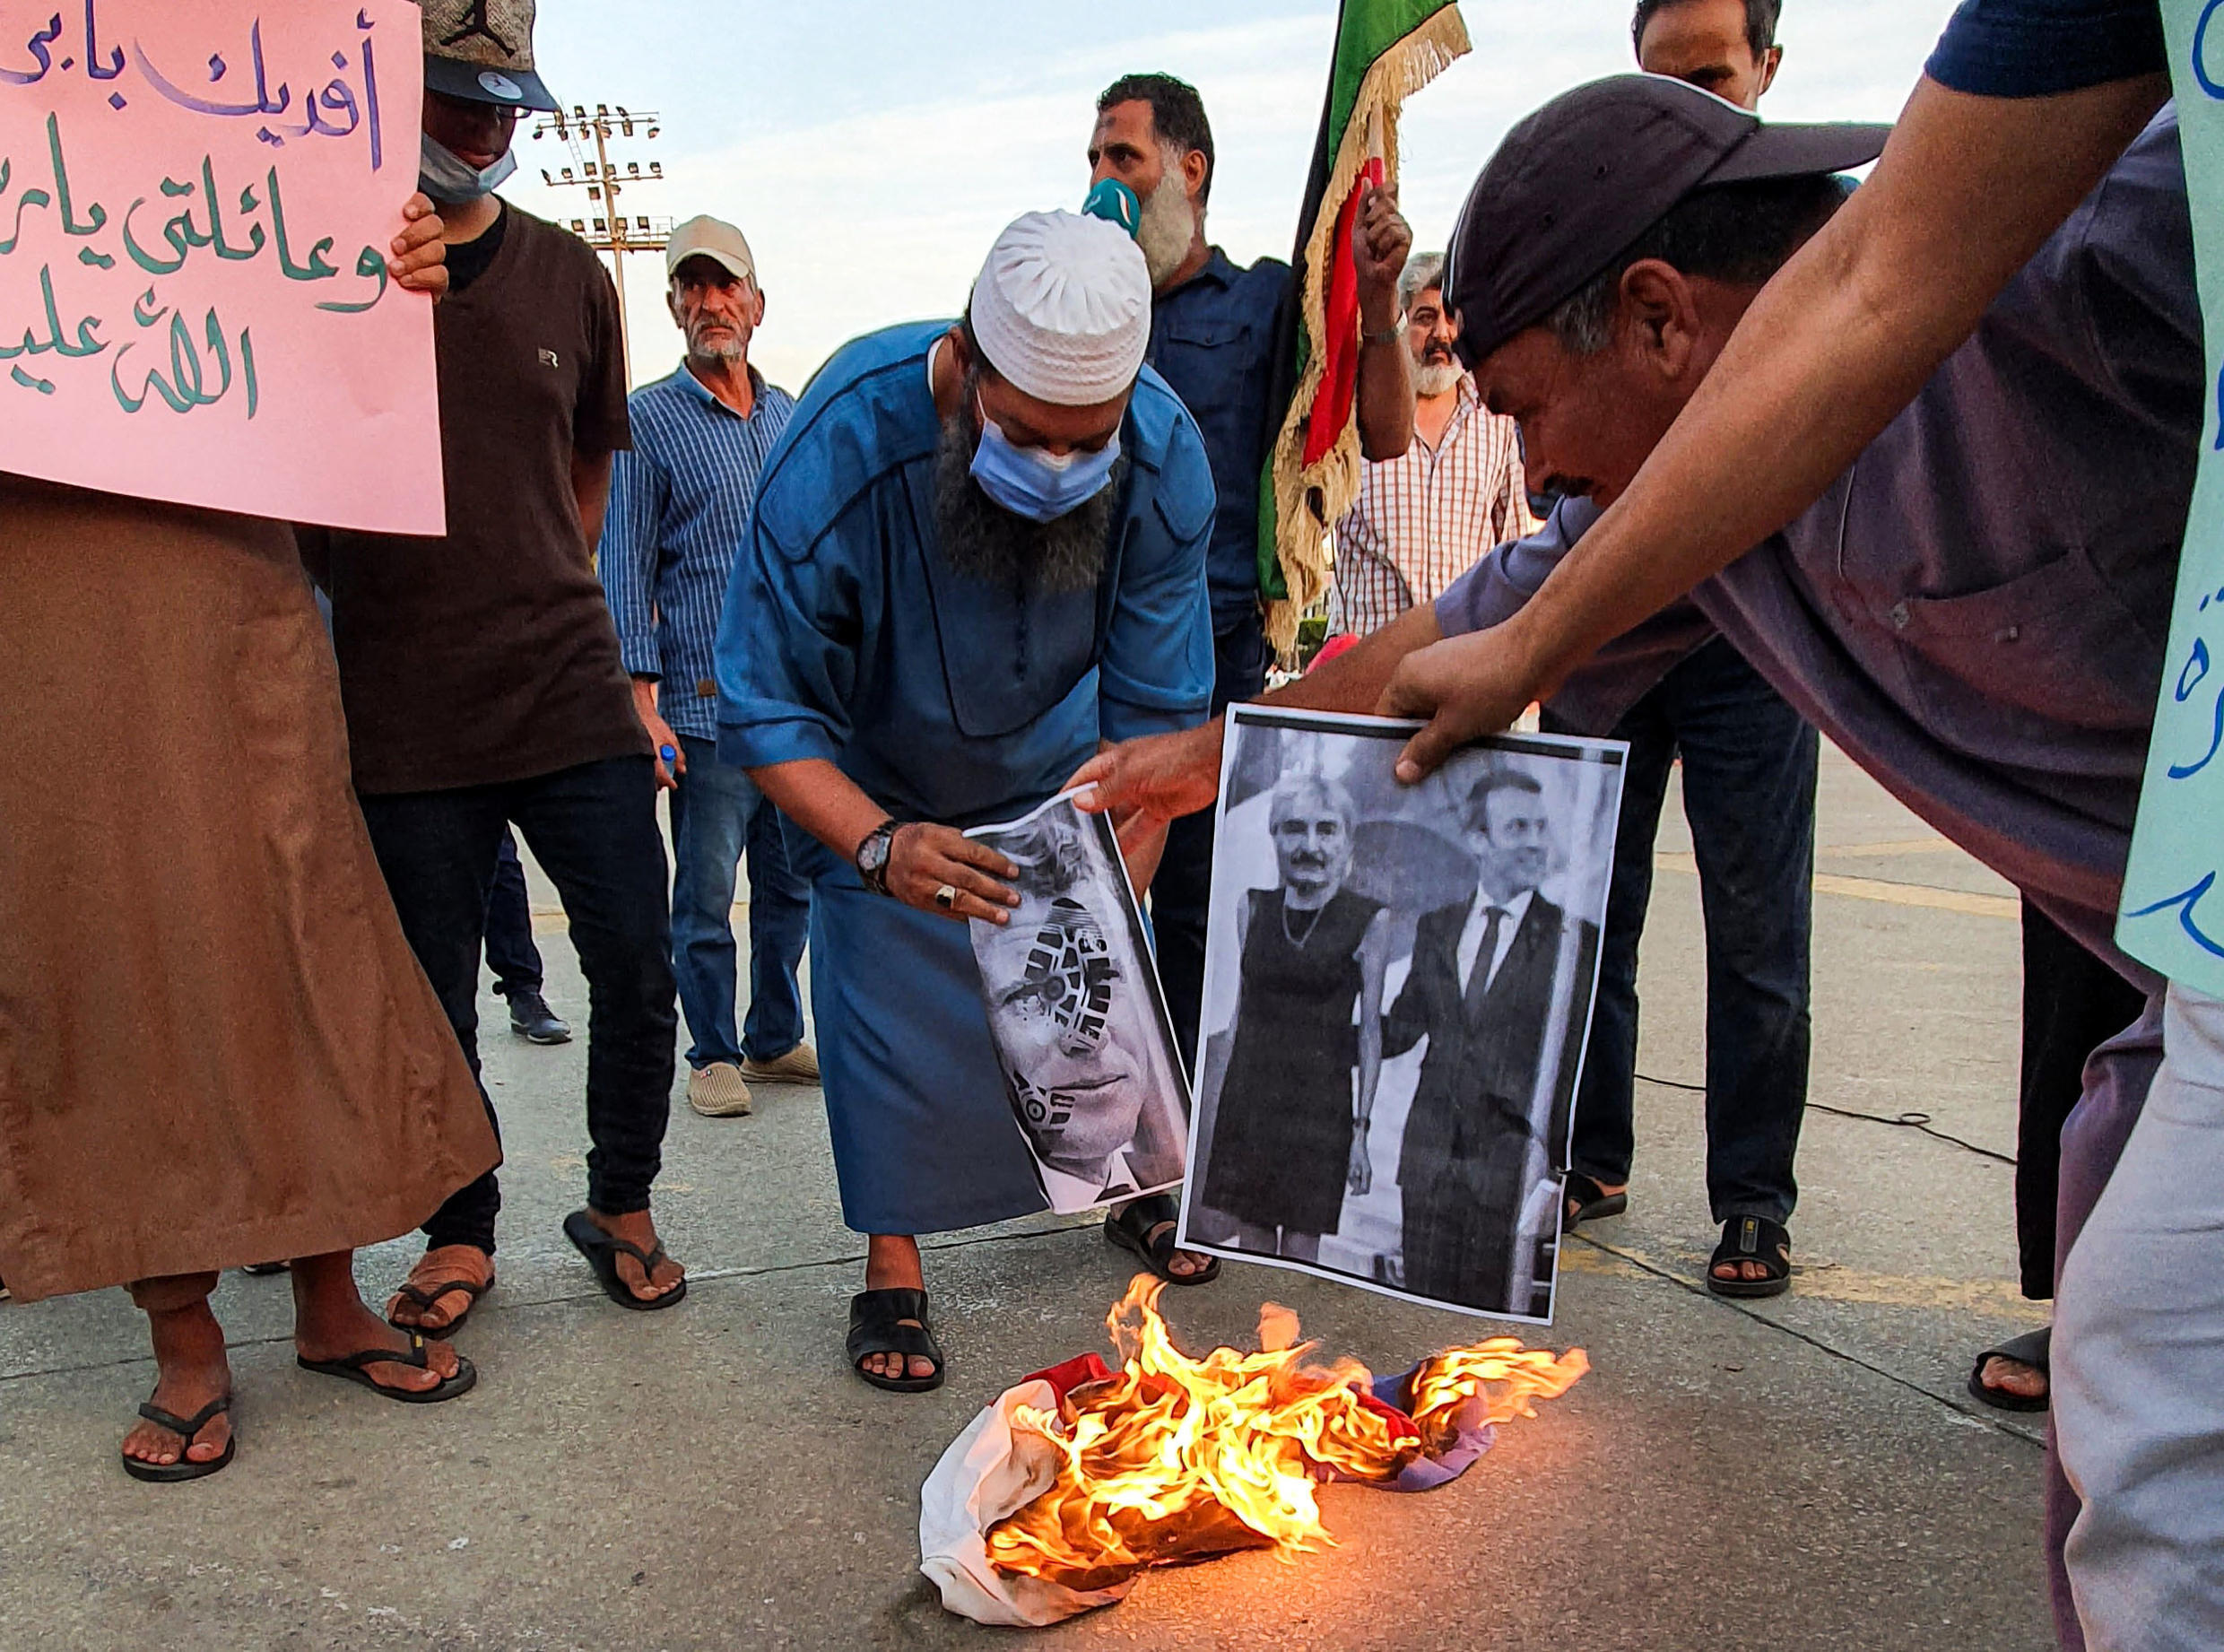 Demonstrators set fire to pictures of French President Emmanuel Macron in Libya